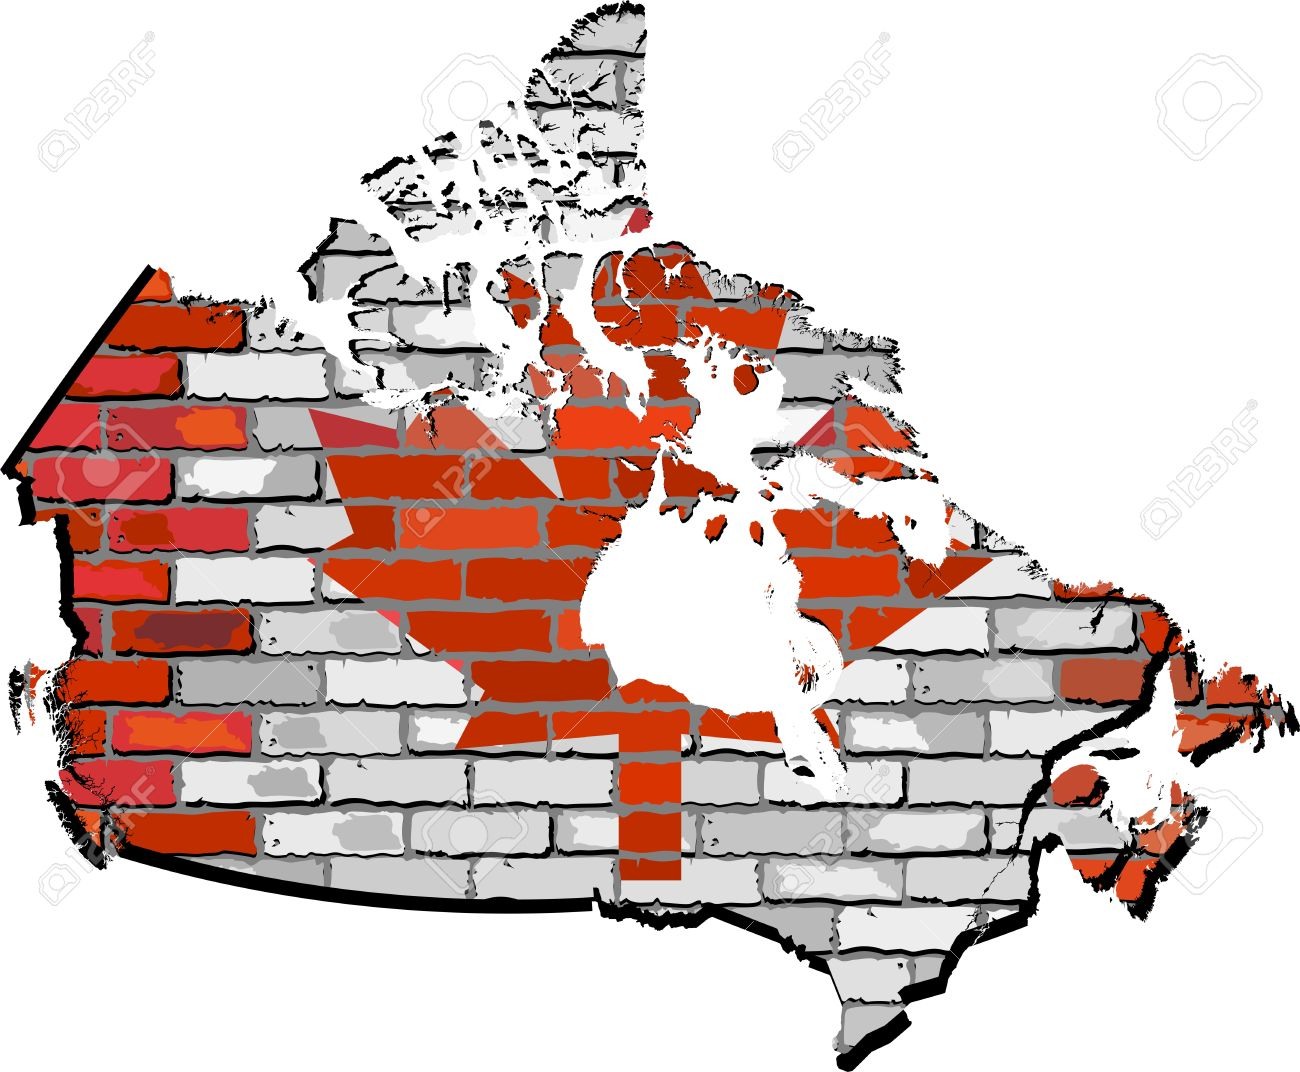 Canada Map With Flag Inside Canadian Flags And Map In Mosaic - Canada map with flag